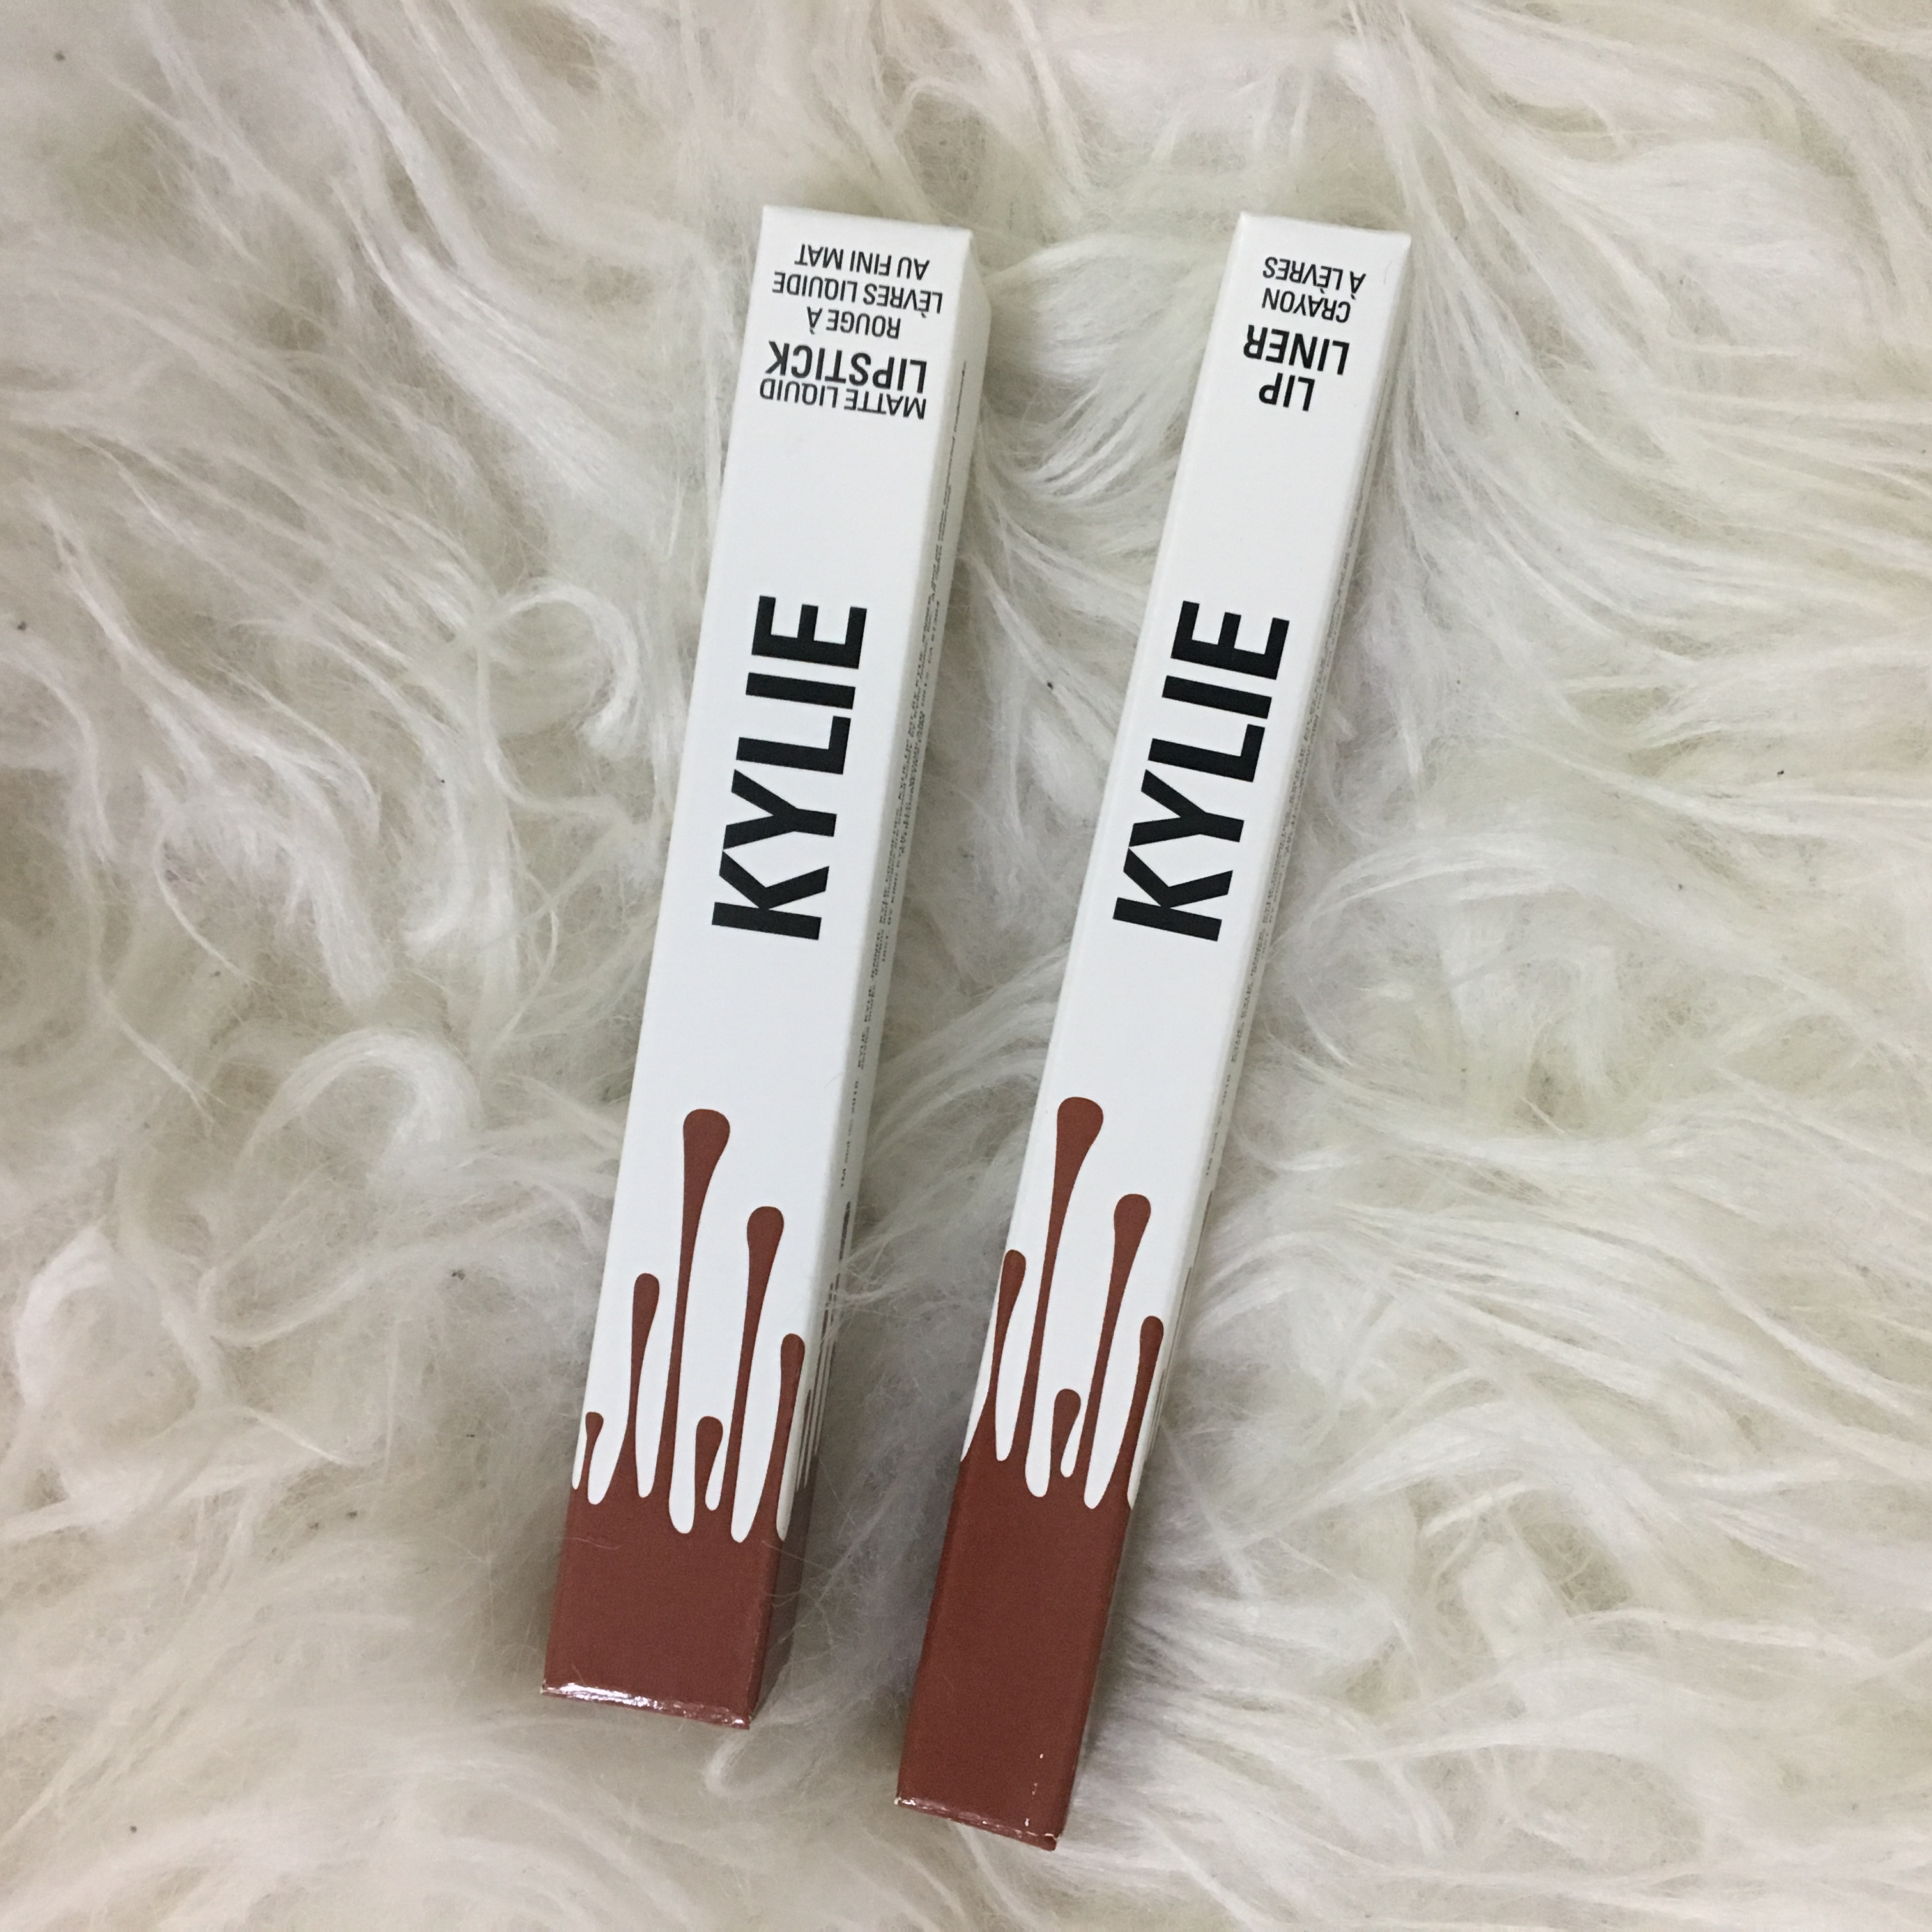 Kylie Cosmetics Dolce K Matte Lipstick and Lip Liner